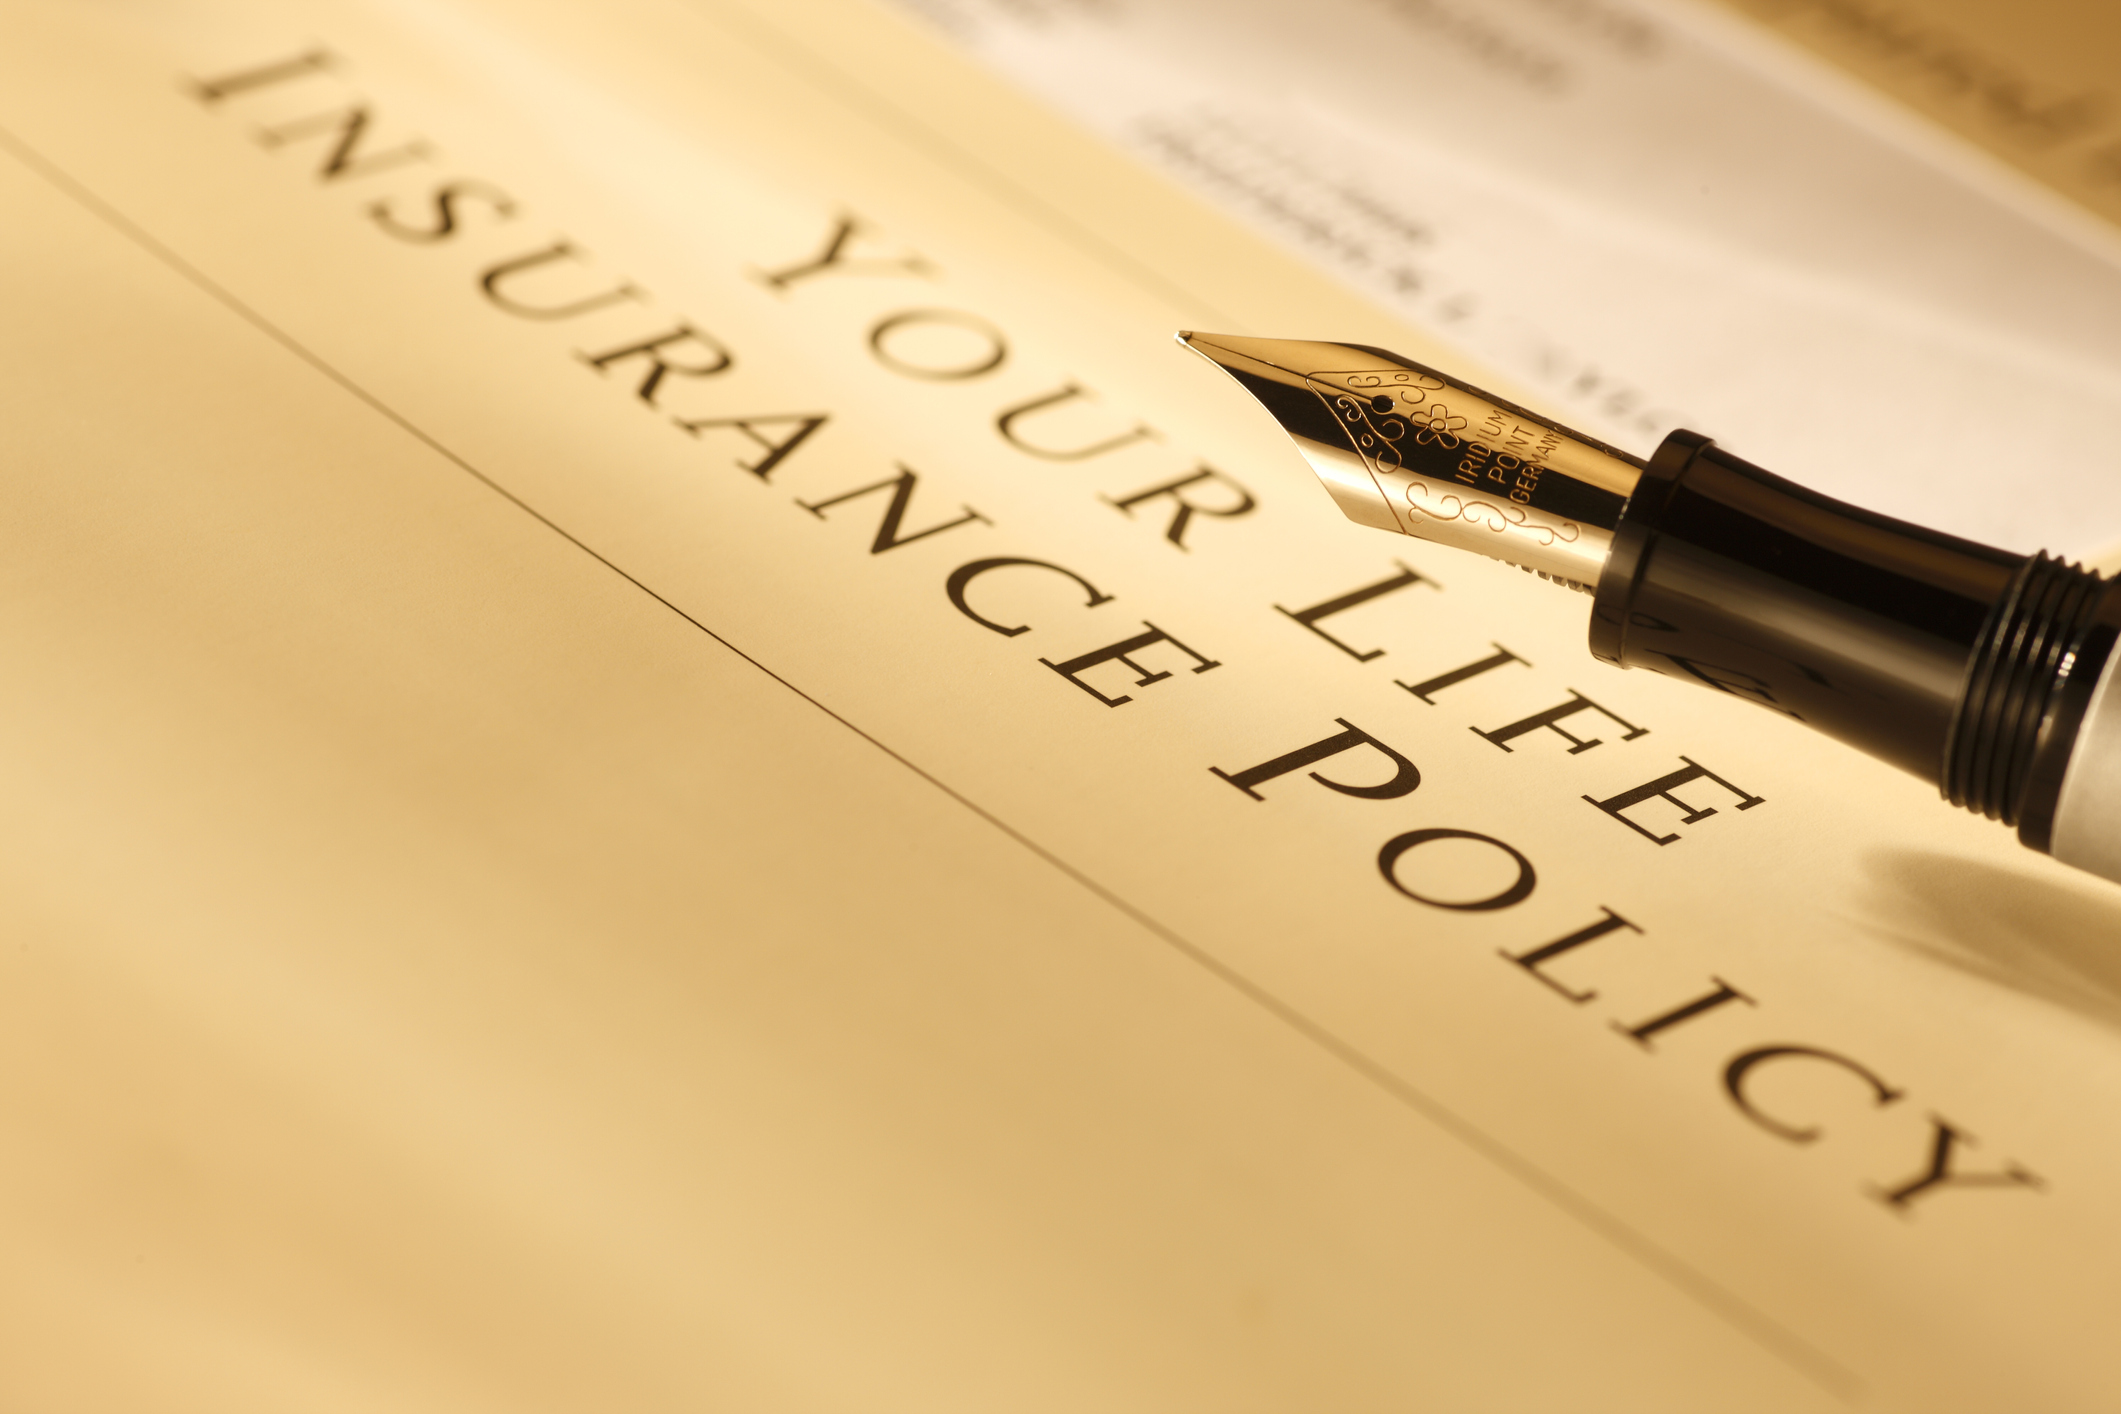 image of life insurance policy